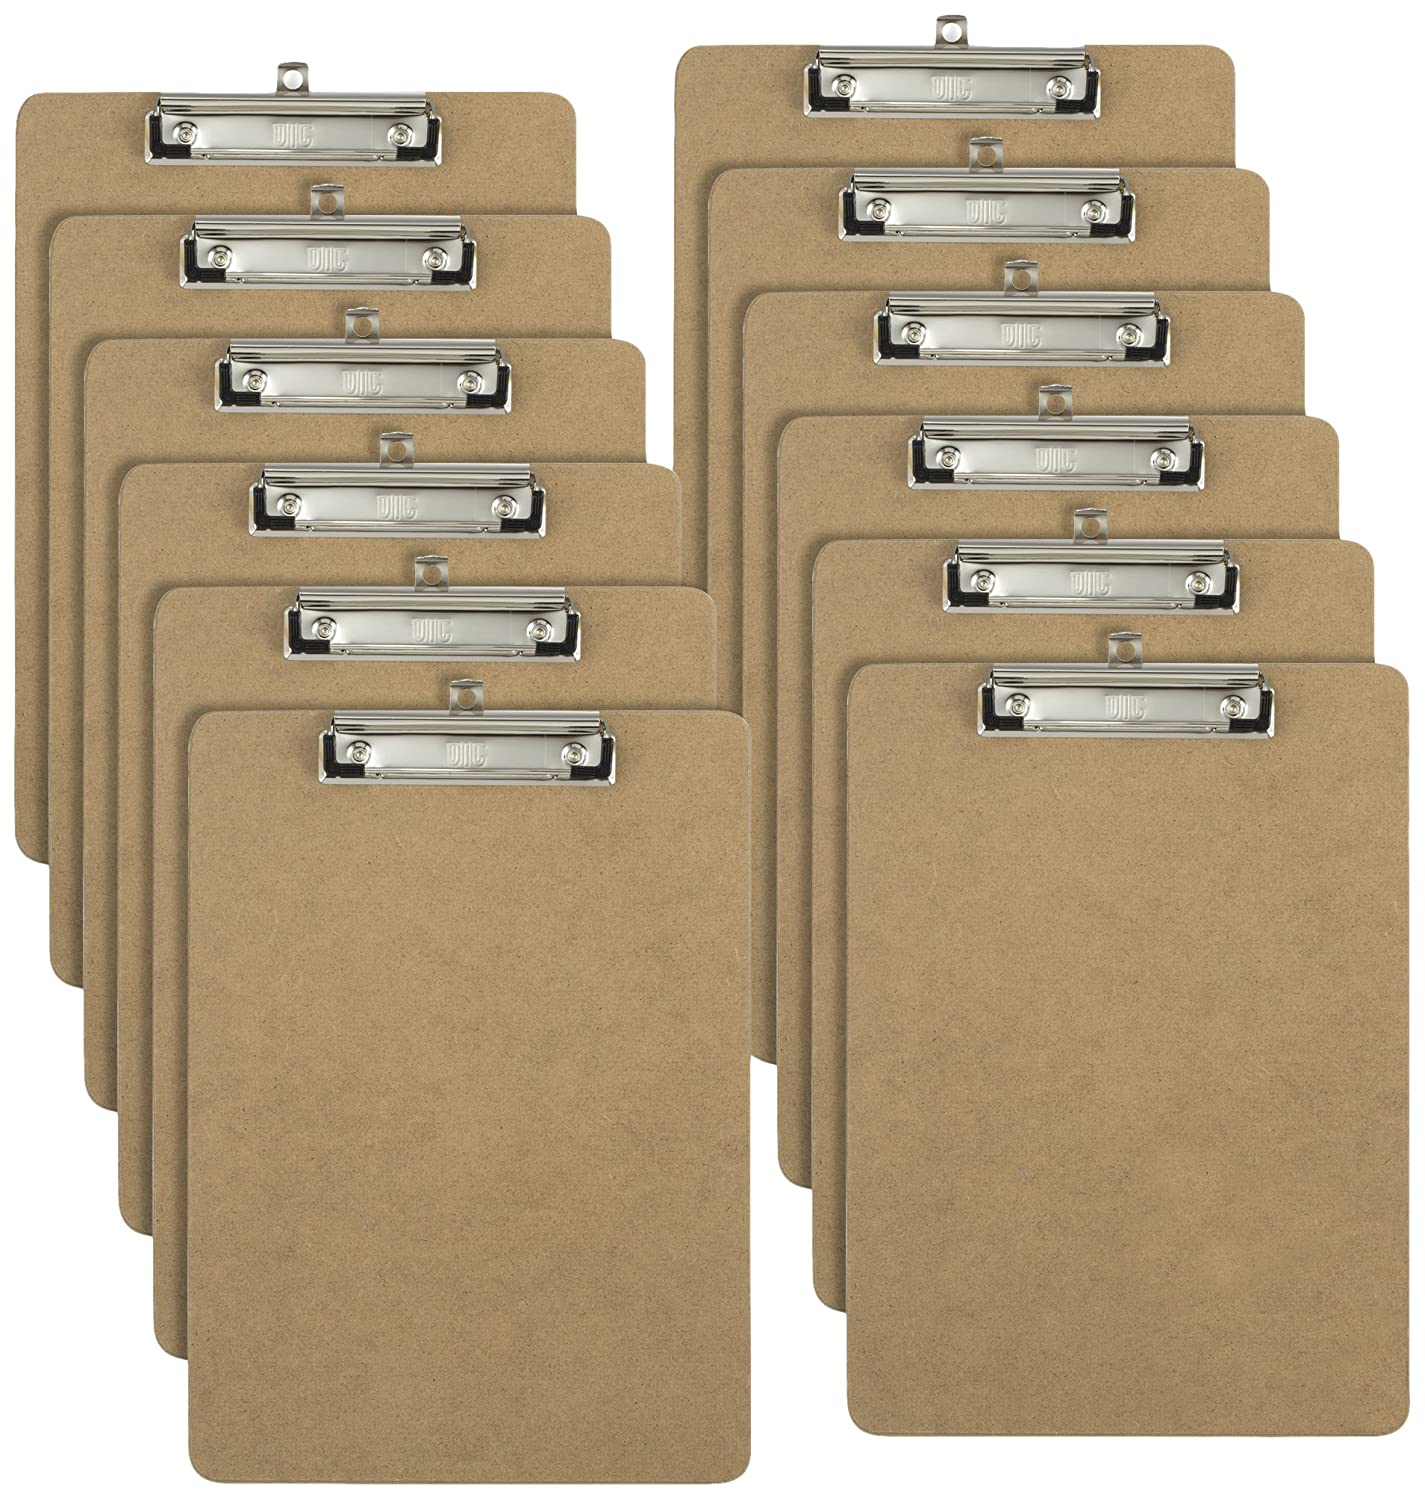 Officemate Letter Size Wood Clipboards, Low Profile Clip, 12 Pack Clipboard, Brown (83812) Officemate International